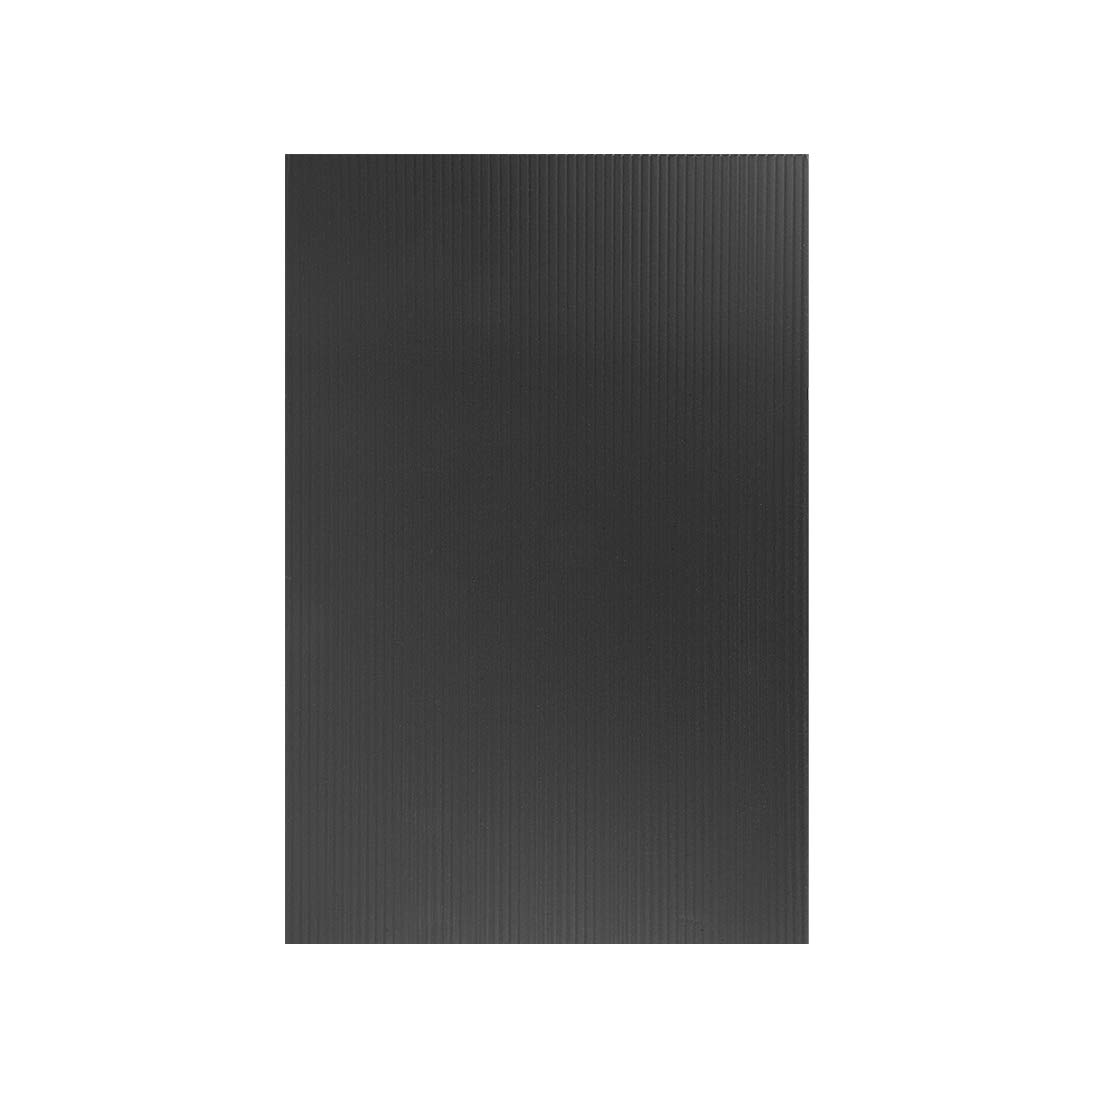 uxcell Corrugated Plastic Sheets,3mm Black Blank Yard Lawn Signs,8 Inch x 12 Inch,Waterproof Sign Blank Board 1pcs